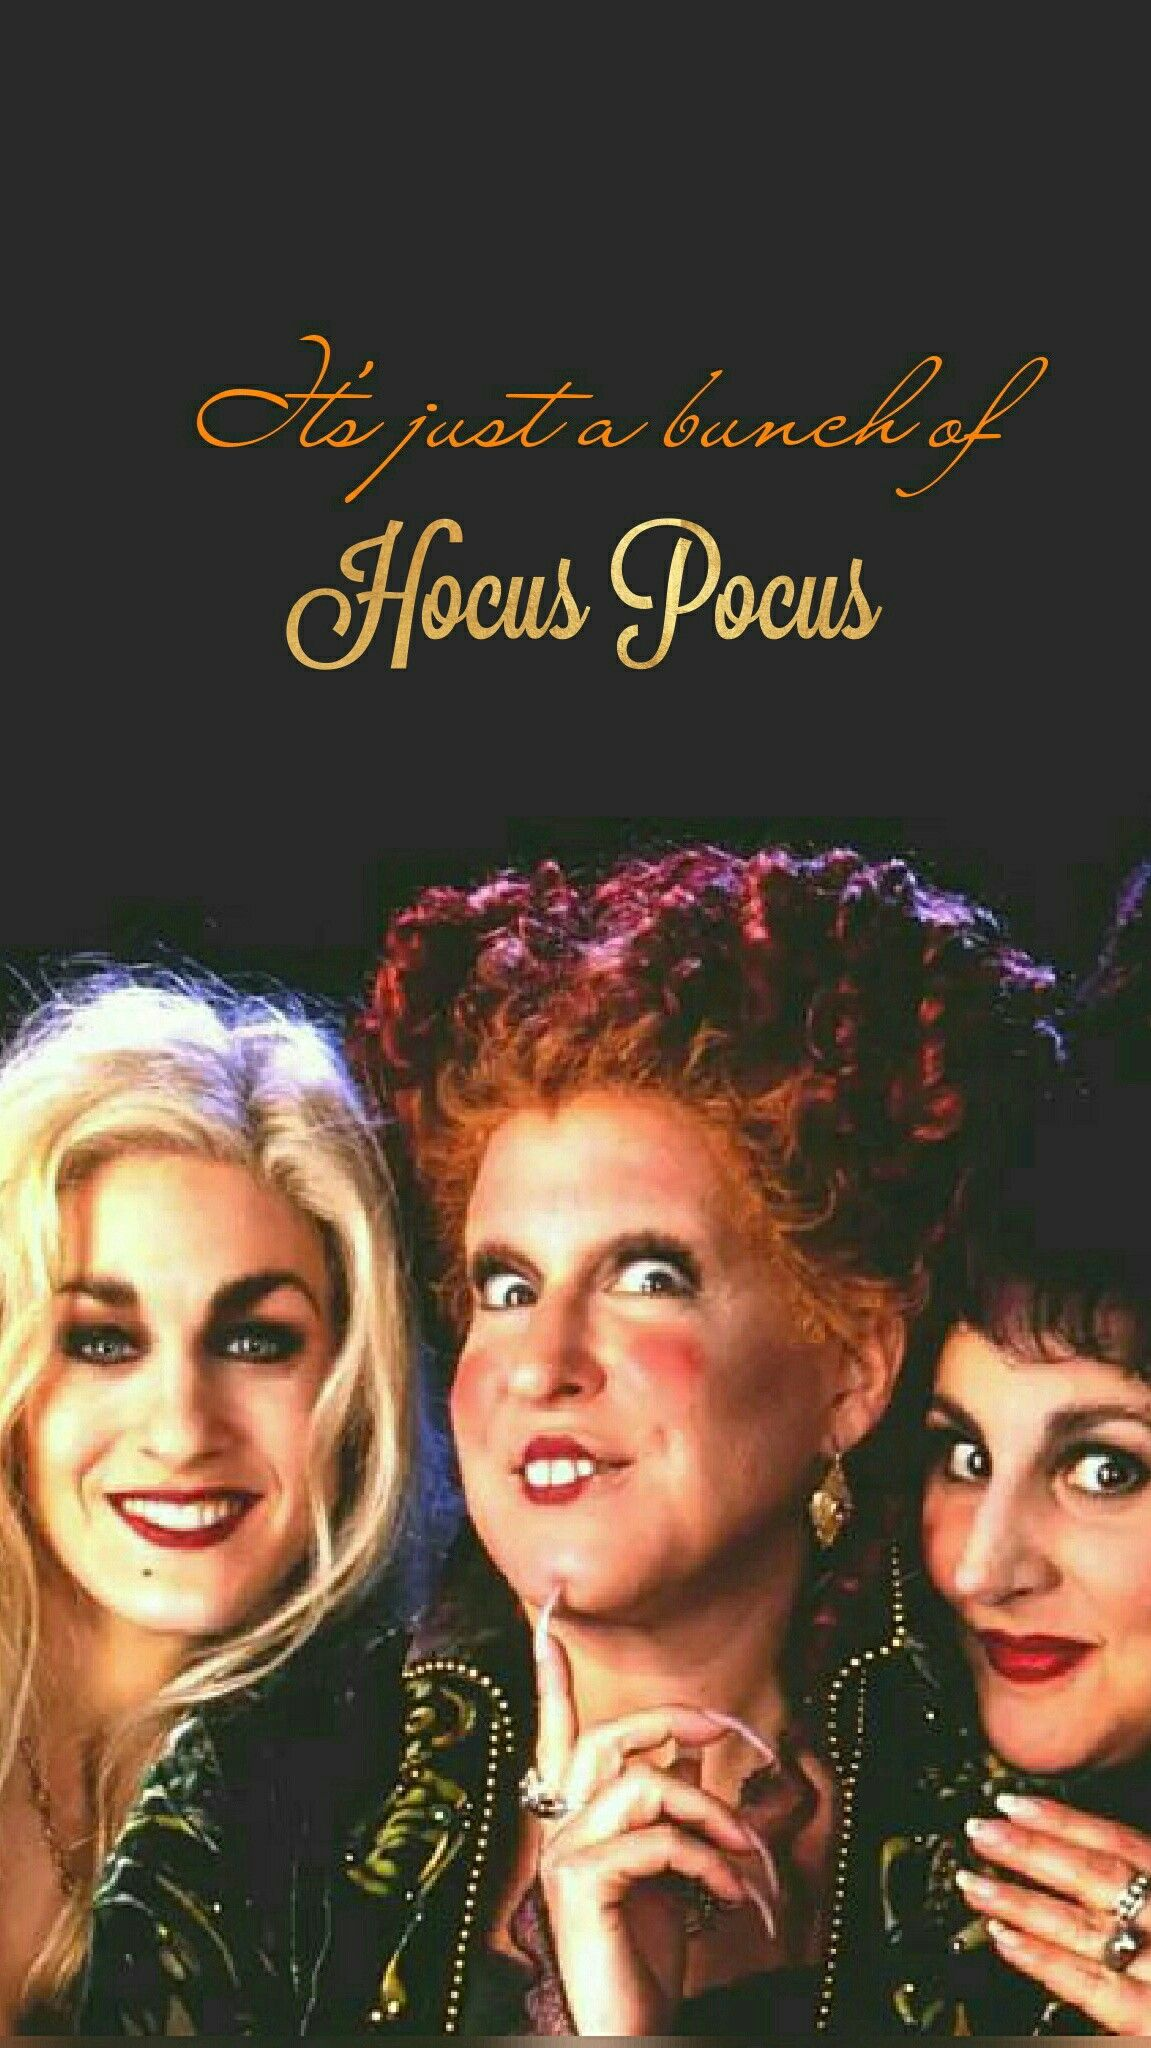 Great Wallpaper Halloween Hocus Pocus - f14706abc1a066413cfee4550d5057ae  Collection_49176.jpg